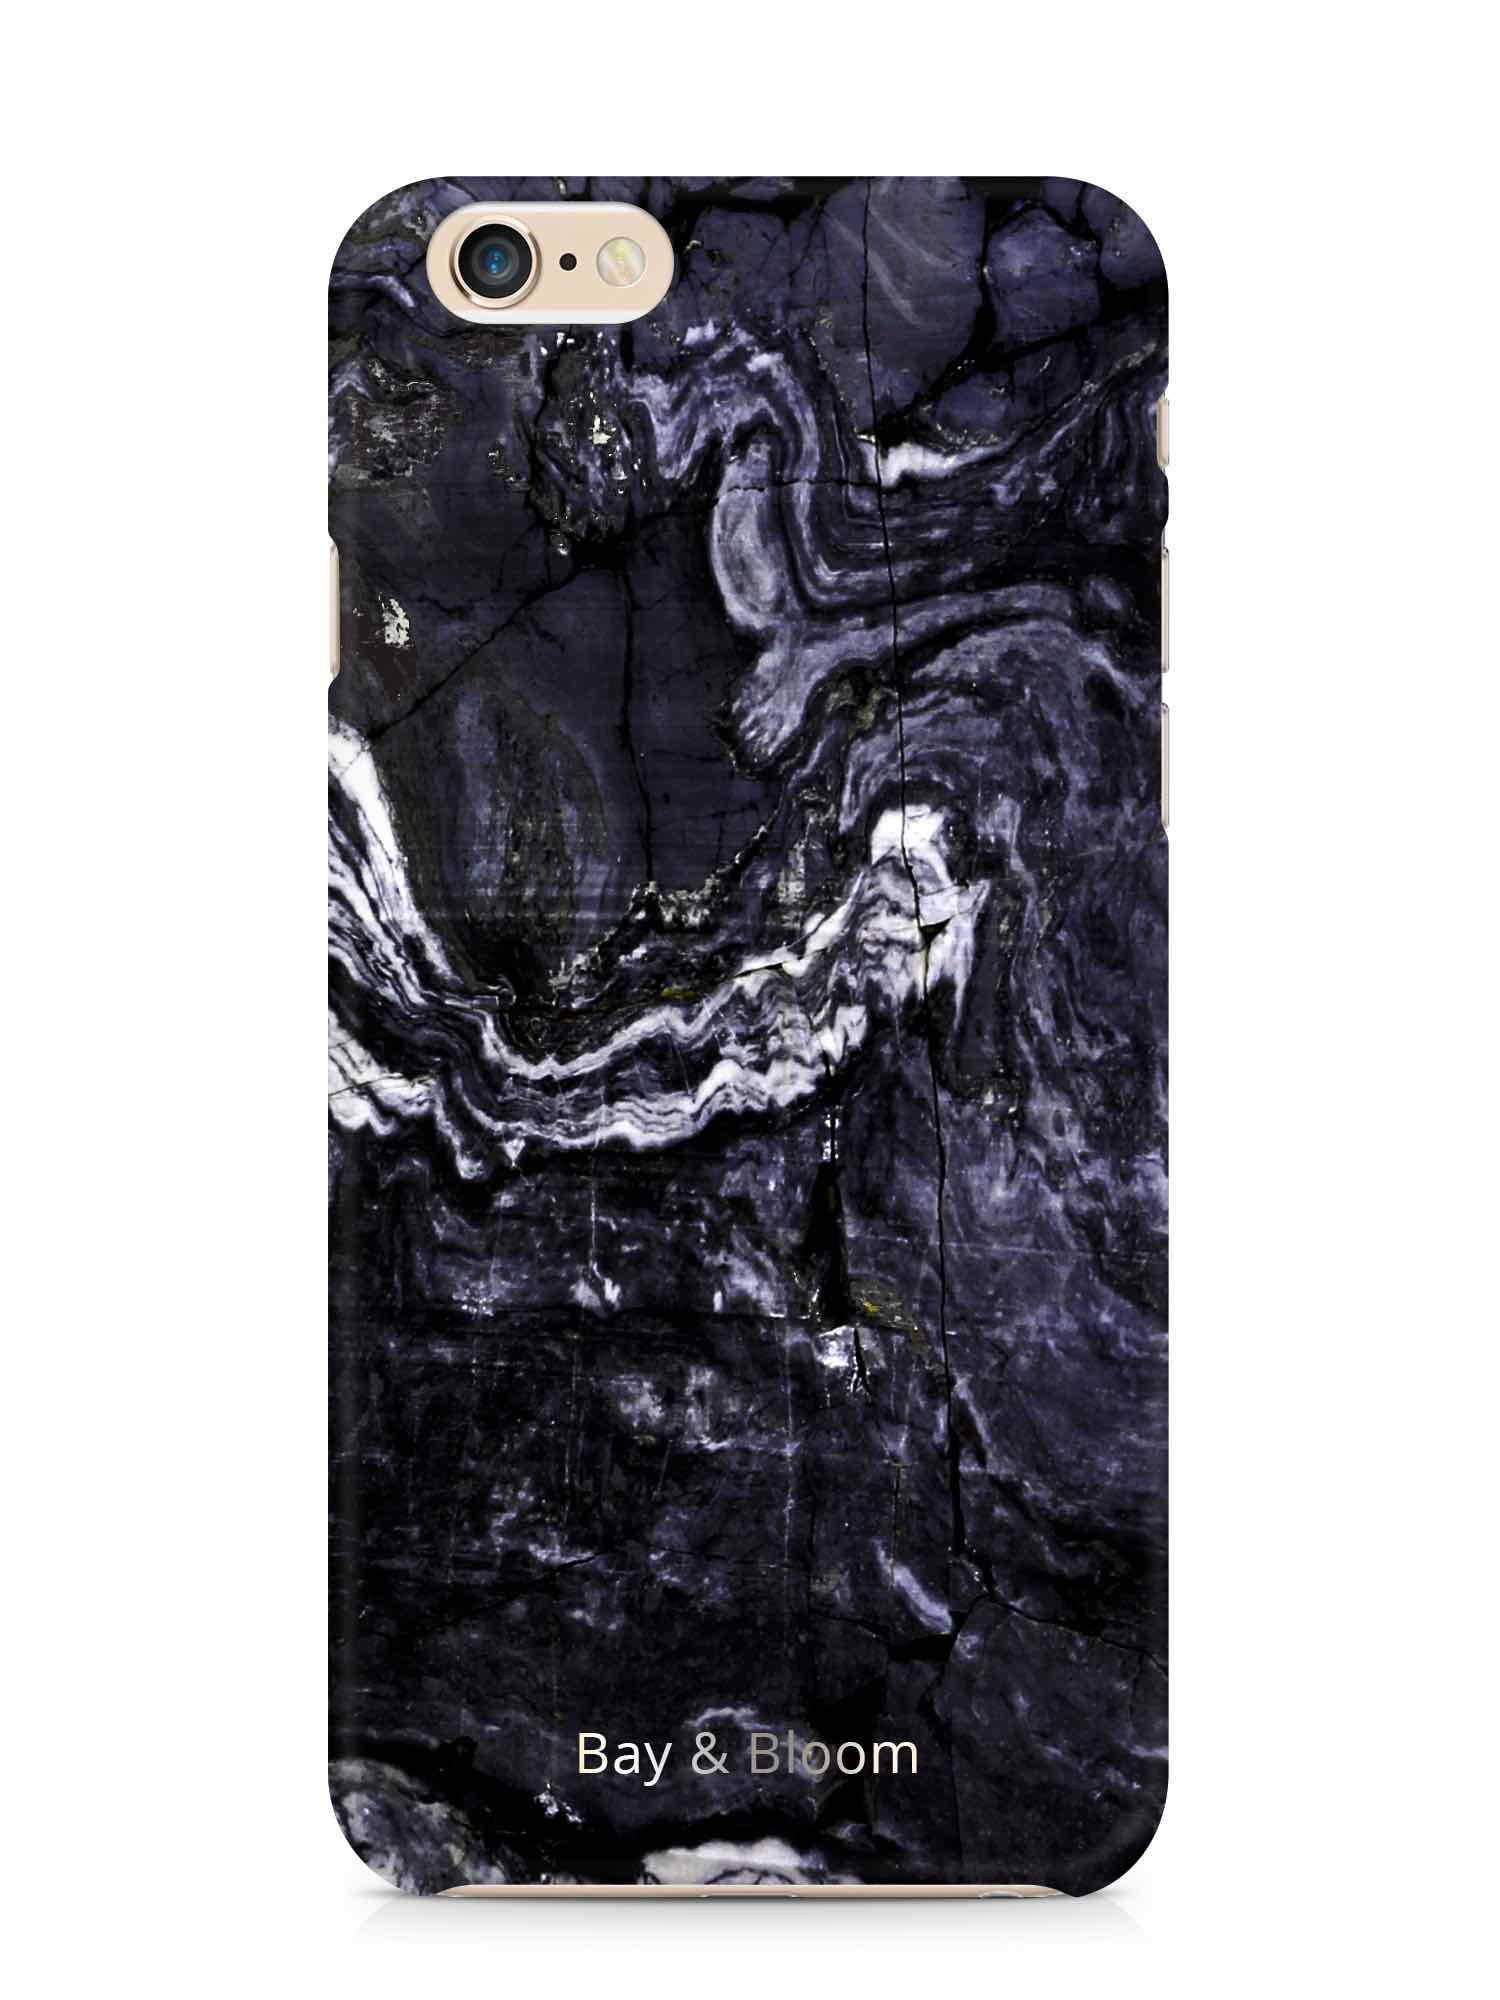 Bay & Bloom iPhone cover - Dark Blue Marble (iPhone 5 & 6) - Luxedy - 1